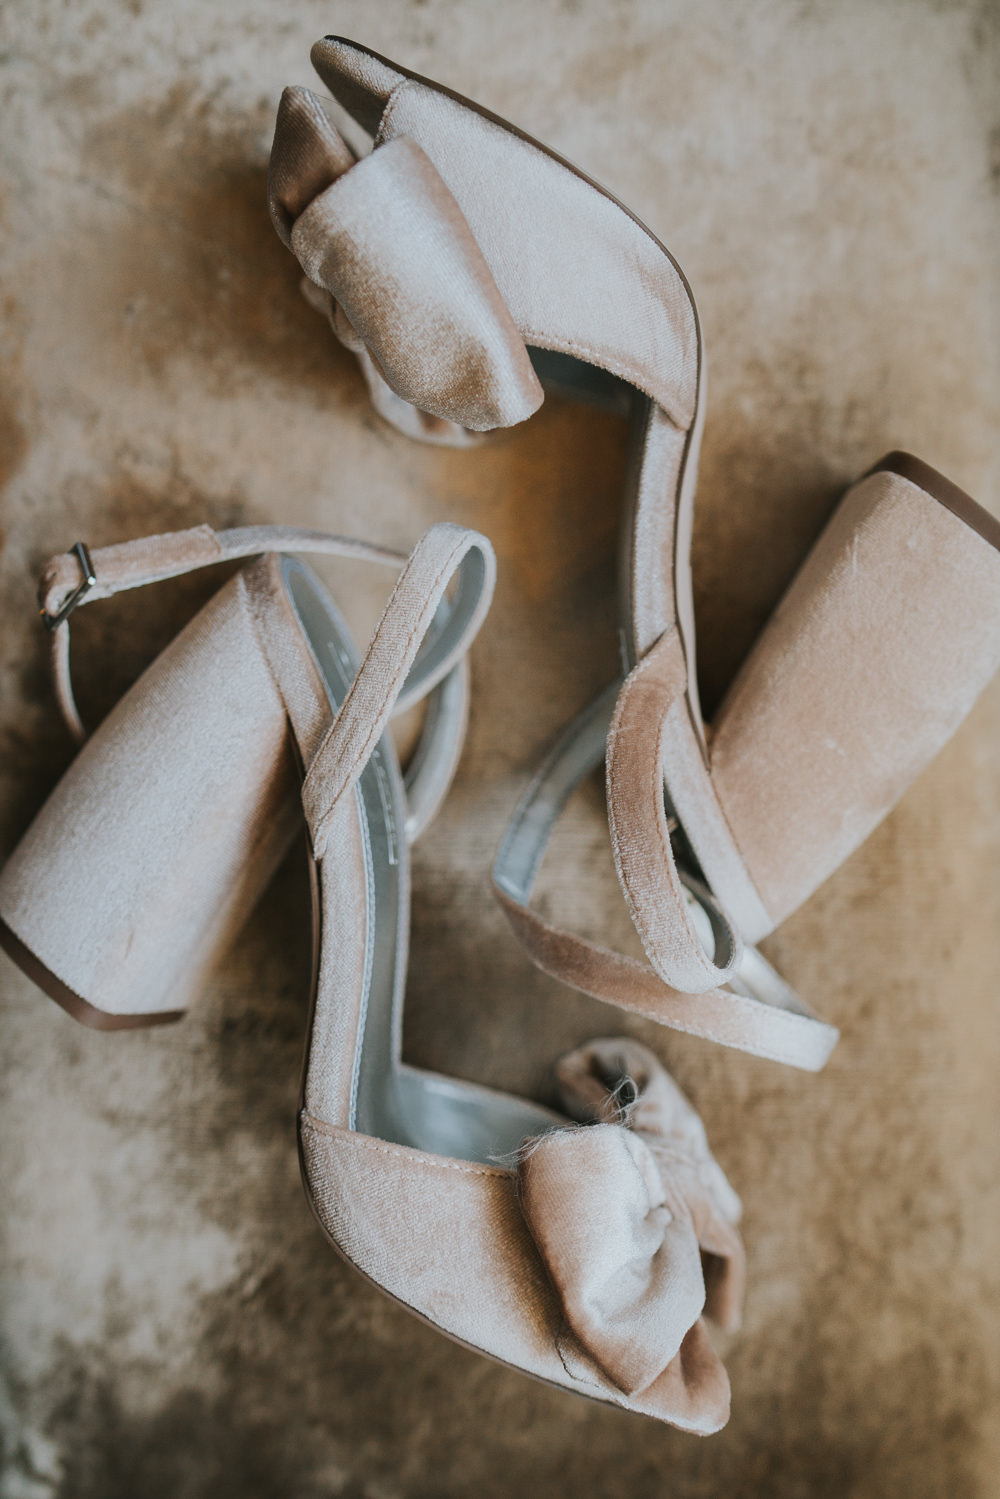 Outdoor Natural Relaxed Laid Back Summer White Dress Bridal Morning Prep Velvet Shoes | Prested Hall Wedding Grace Elizabeth Photography